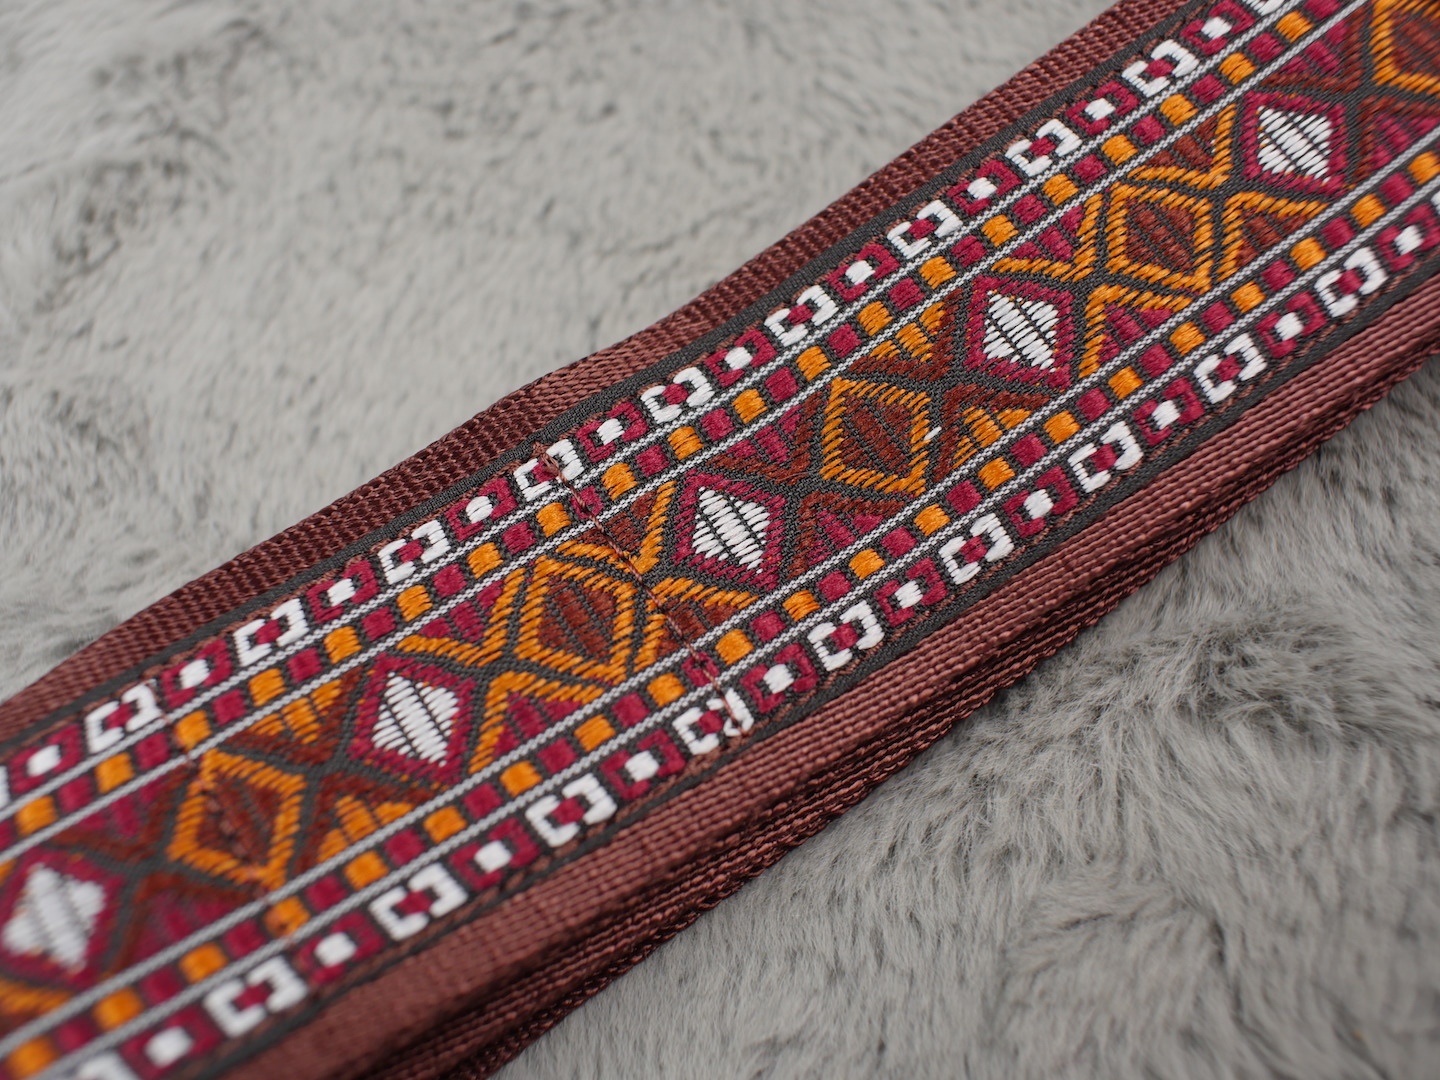 Air Straps Limited Edition 'Mohawk' Guitar Strap